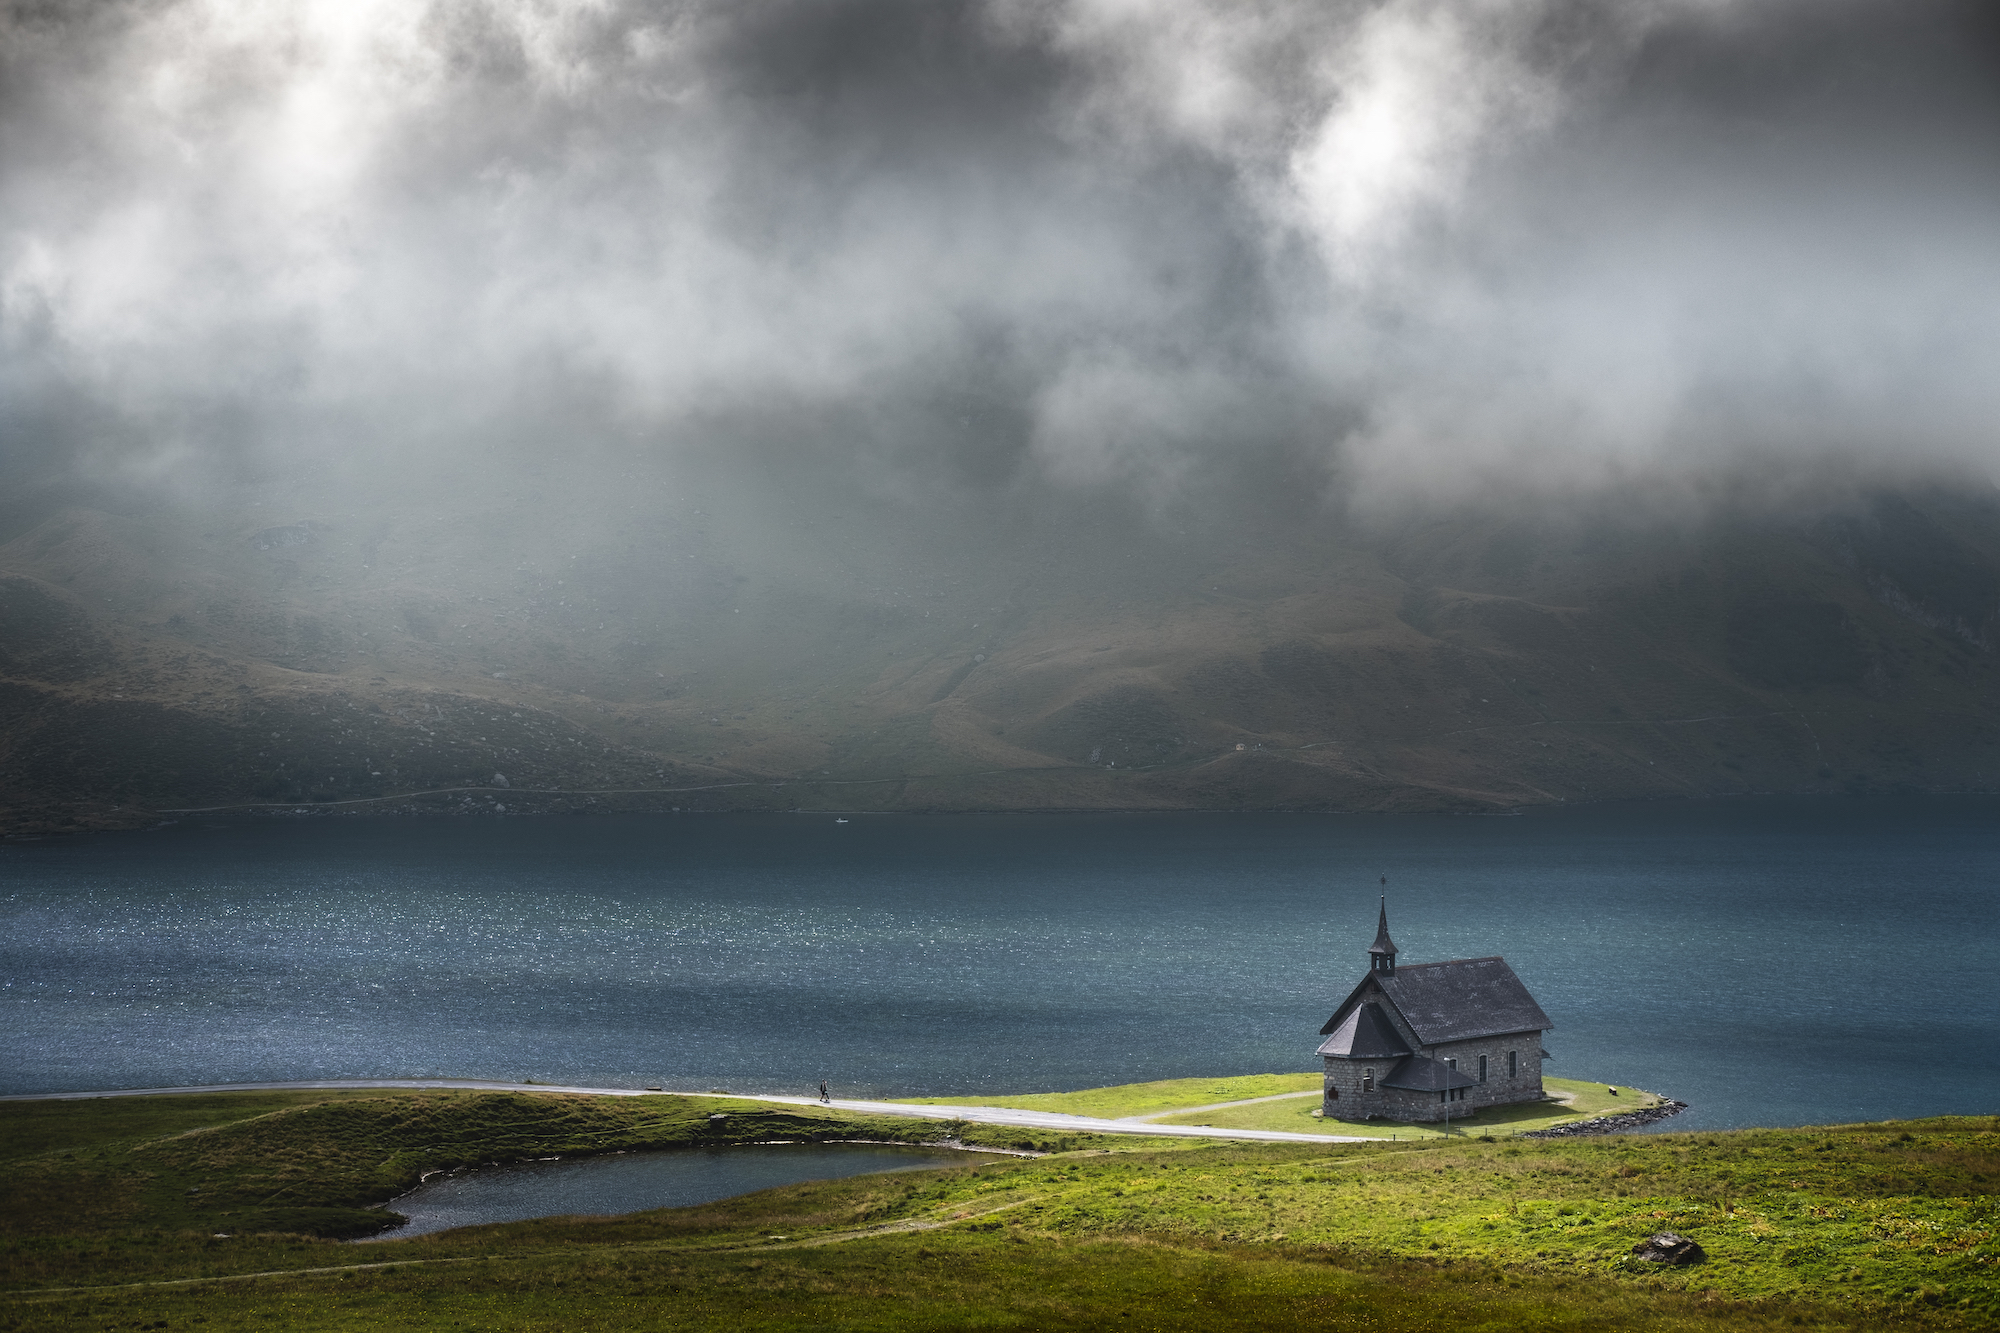 A patch of light illuminating the church at the lake, Switzerland